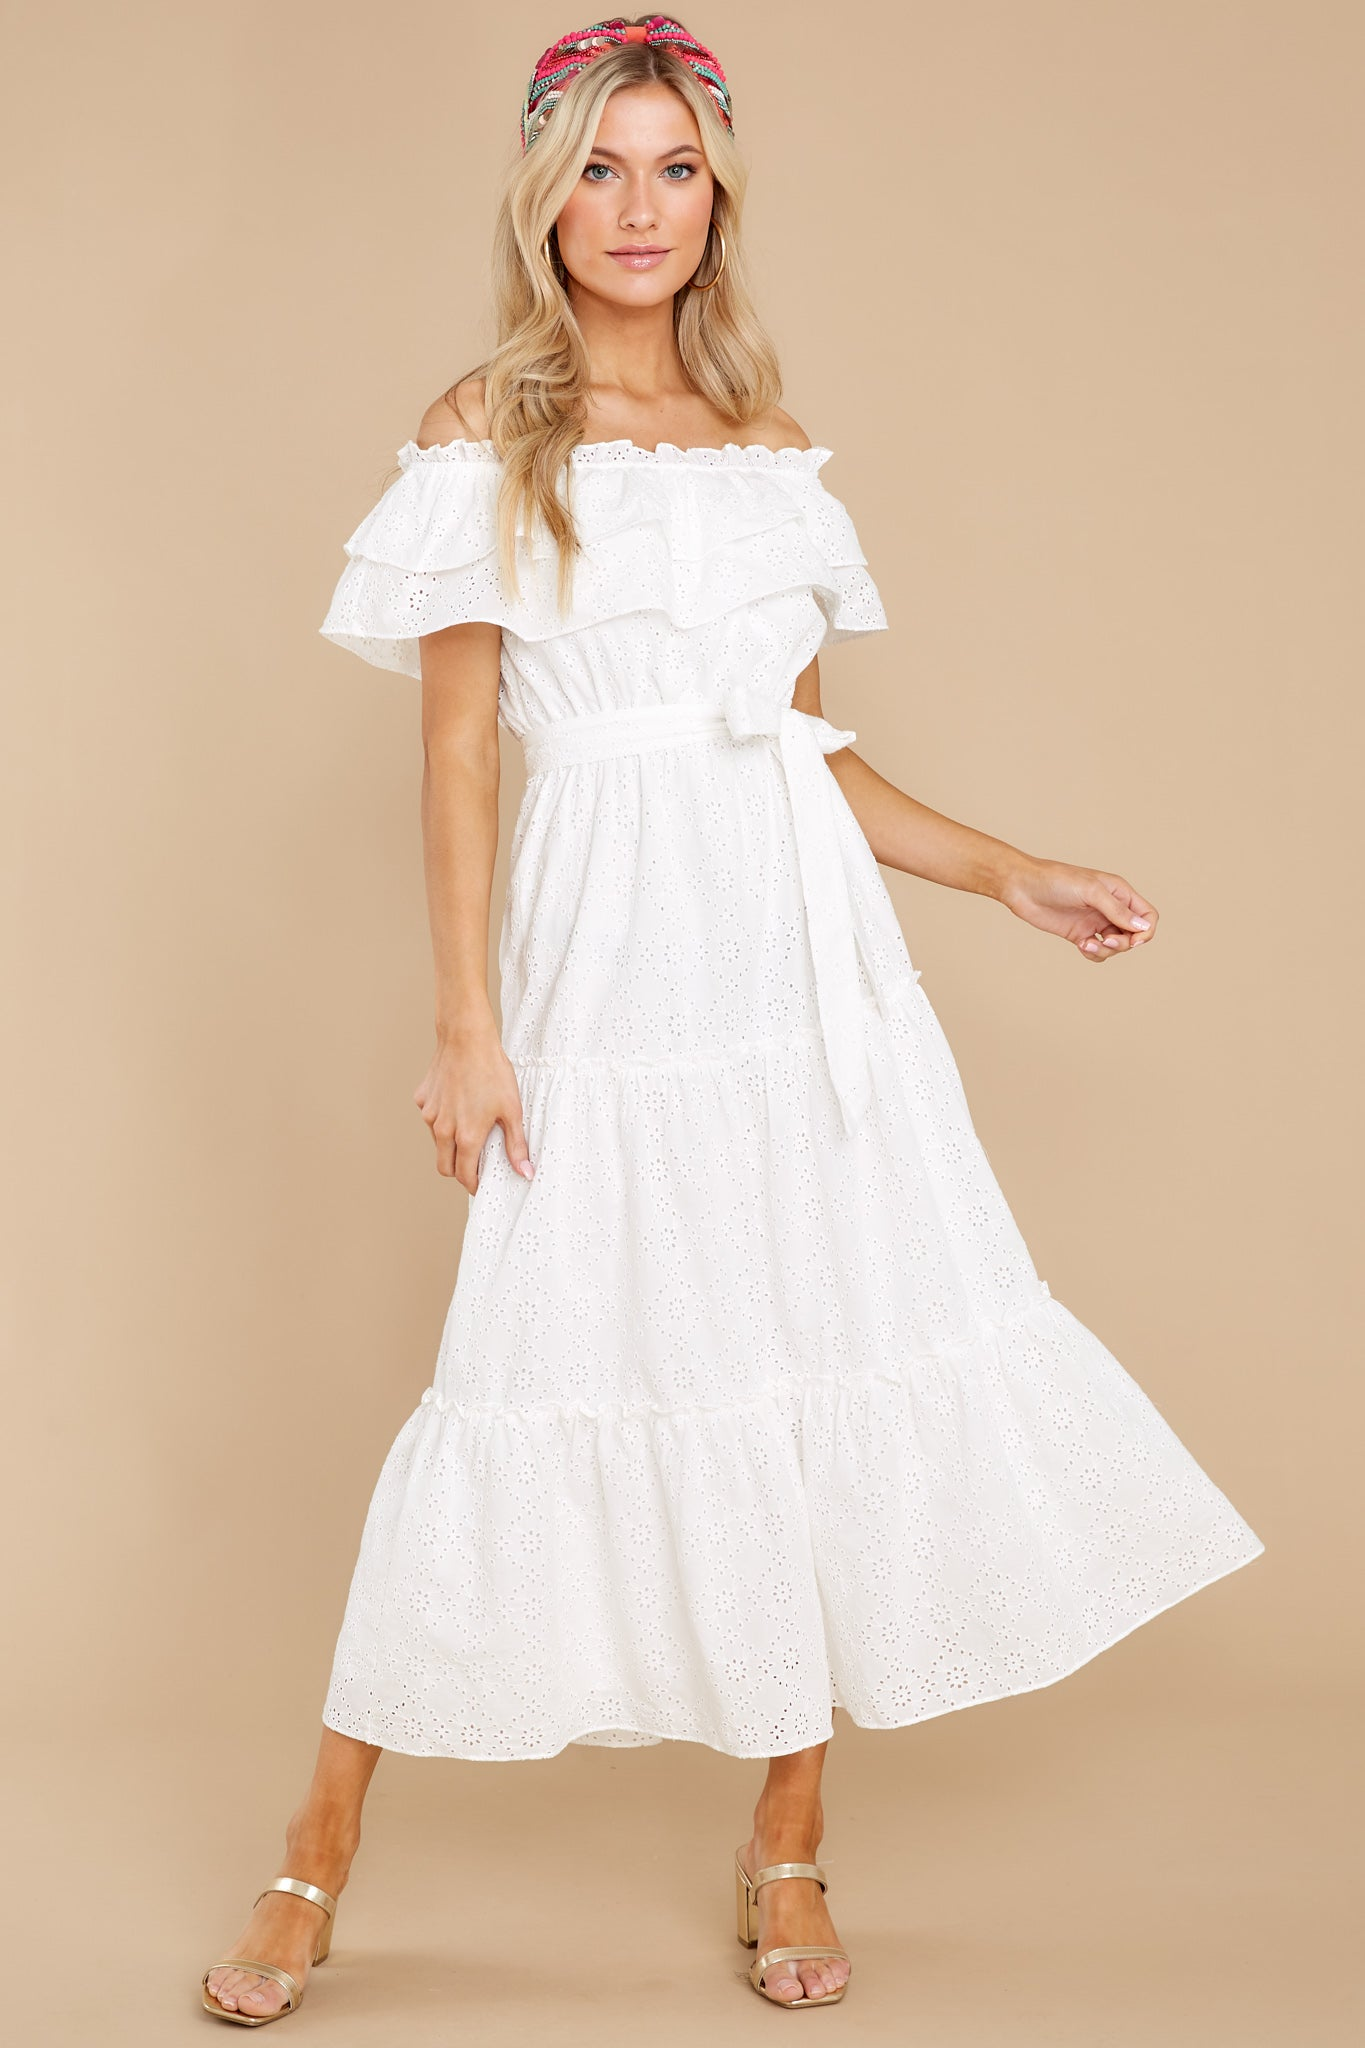 Cottagecore Dresses – Aesthetic, Granny, Vintage Relaxing Getaway White Maxi Dress $68.00 AT vintagedancer.com